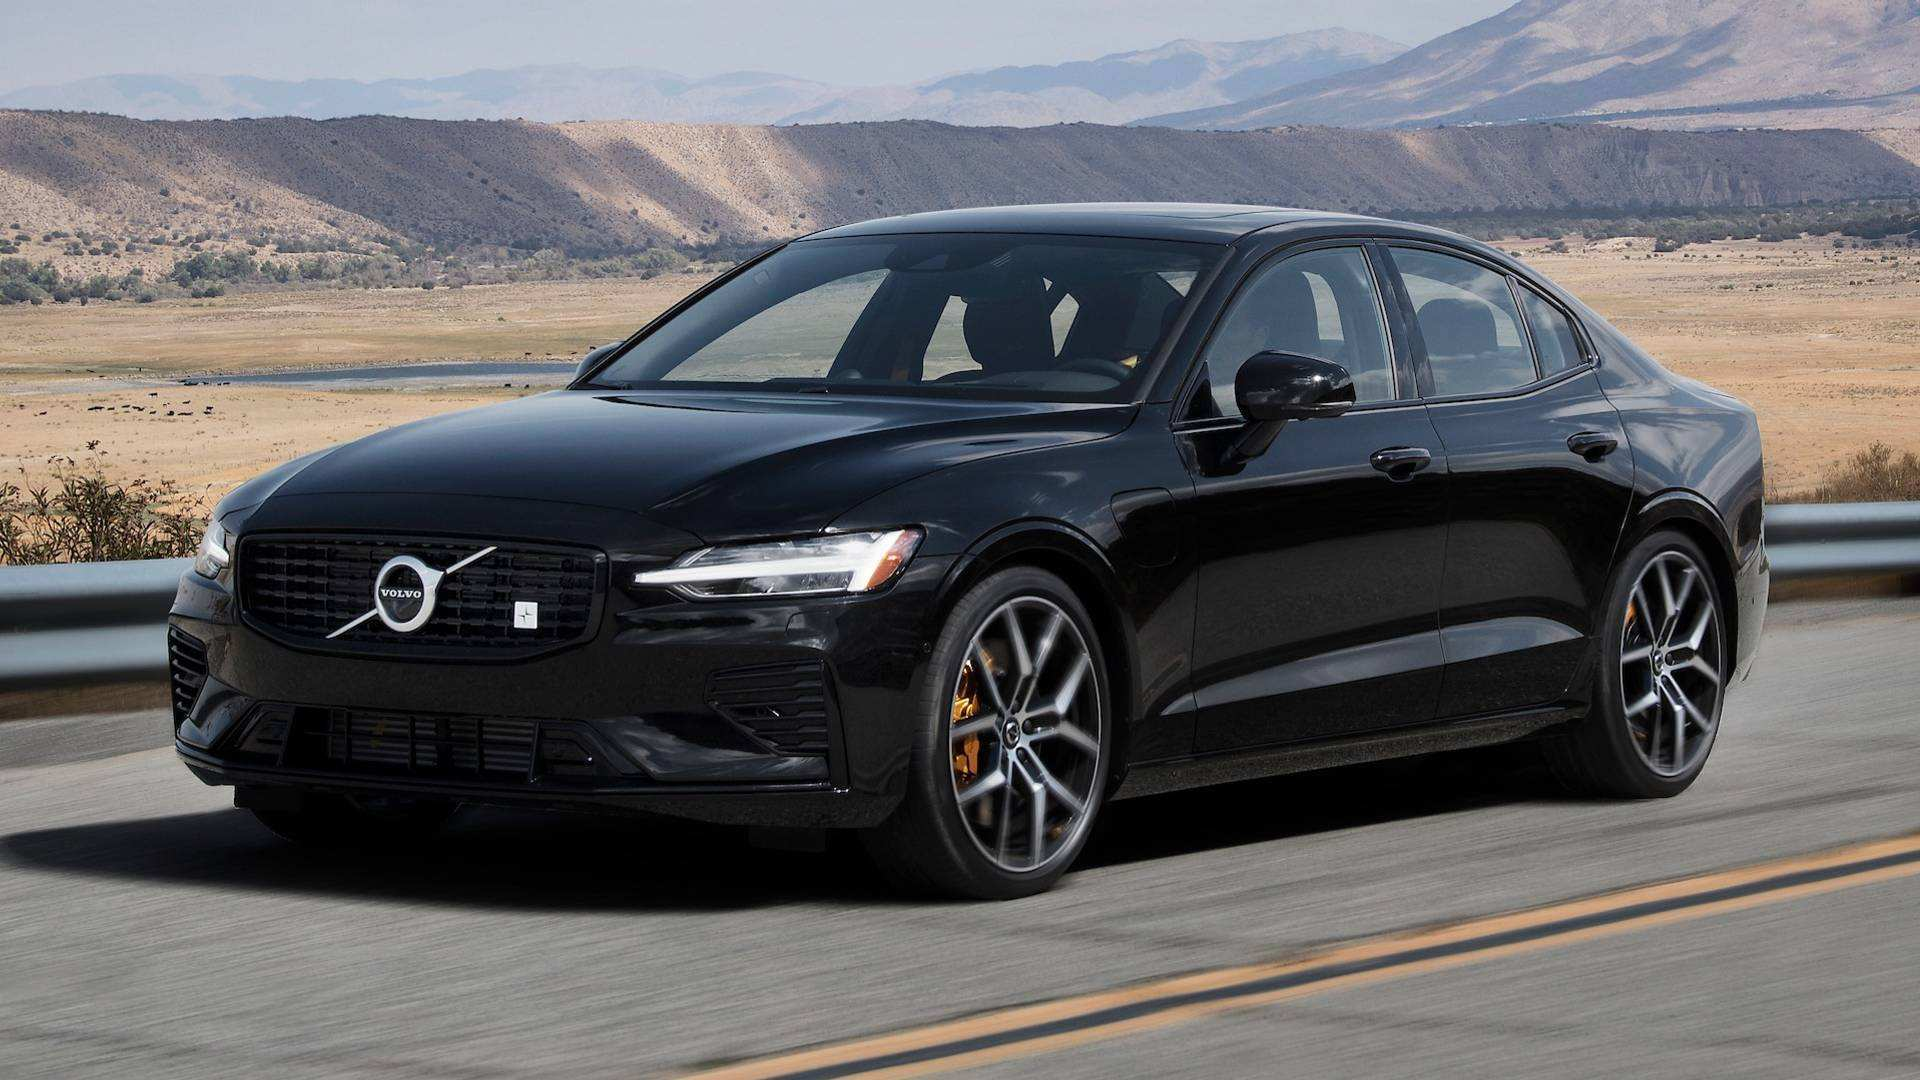 20 Gallery of 2019 Volvo S60 Overview with 2019 Volvo S60